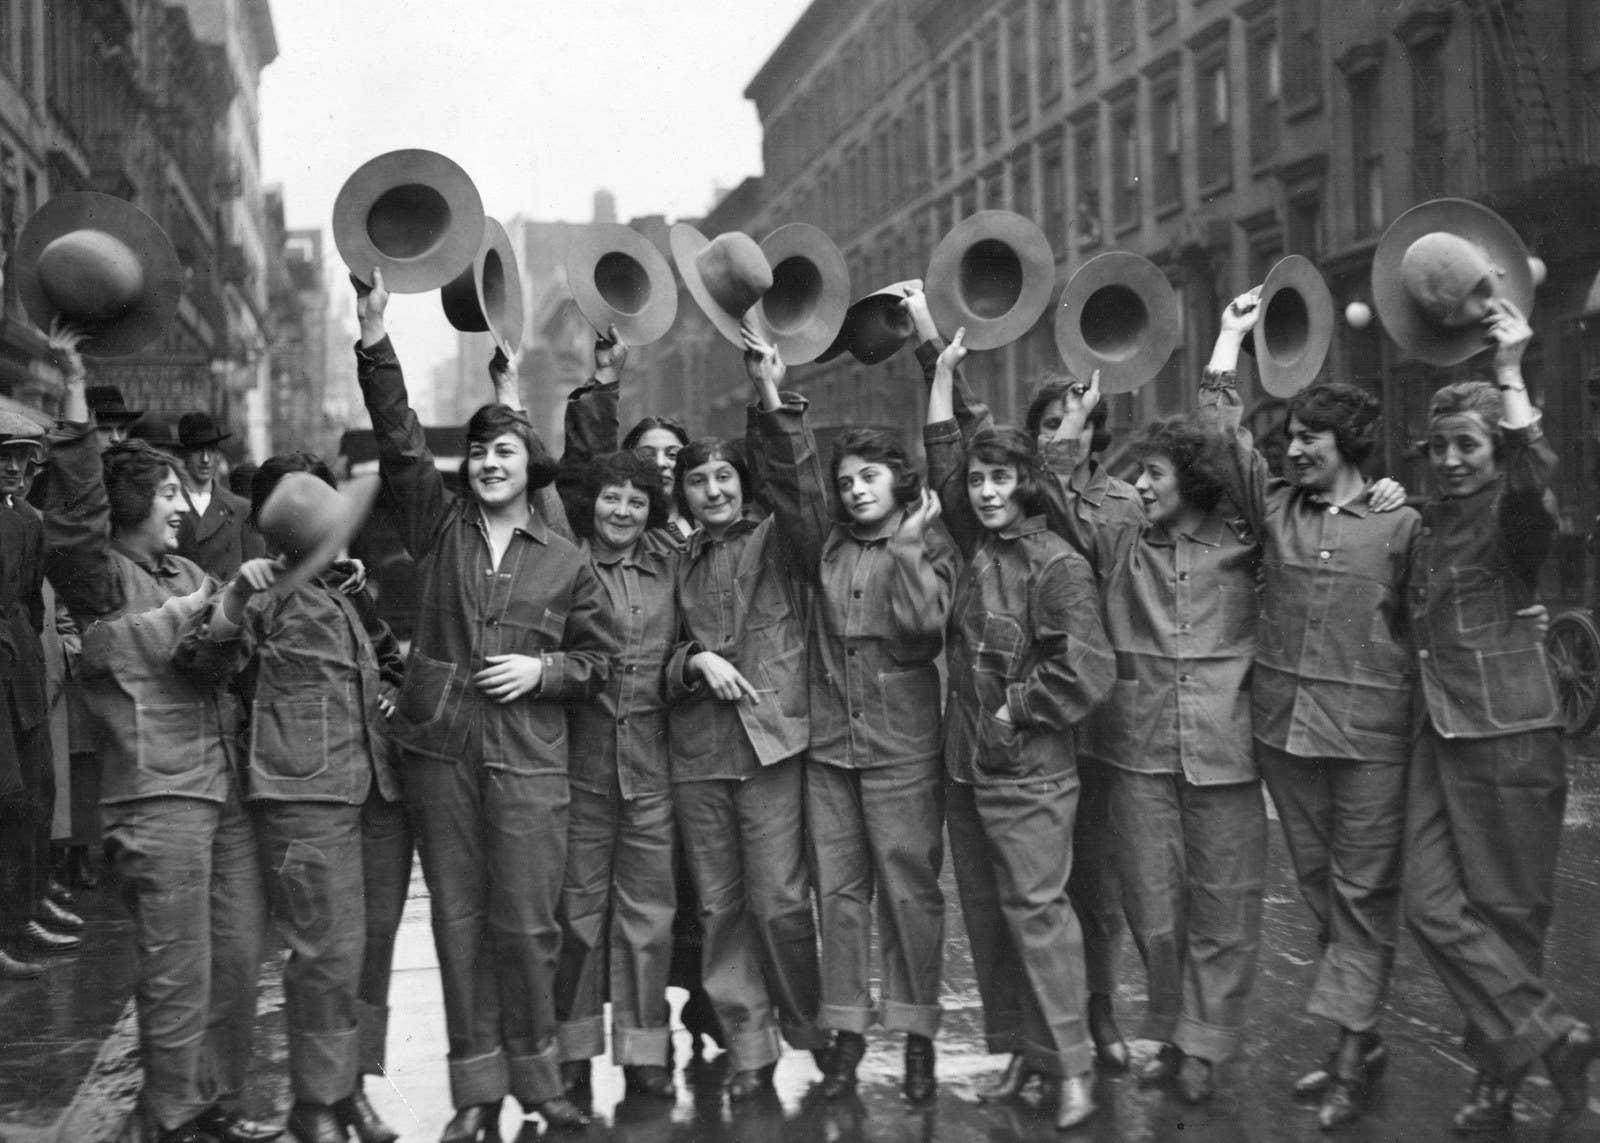 Women parade in their military uniforms in New York City, circa 1918.